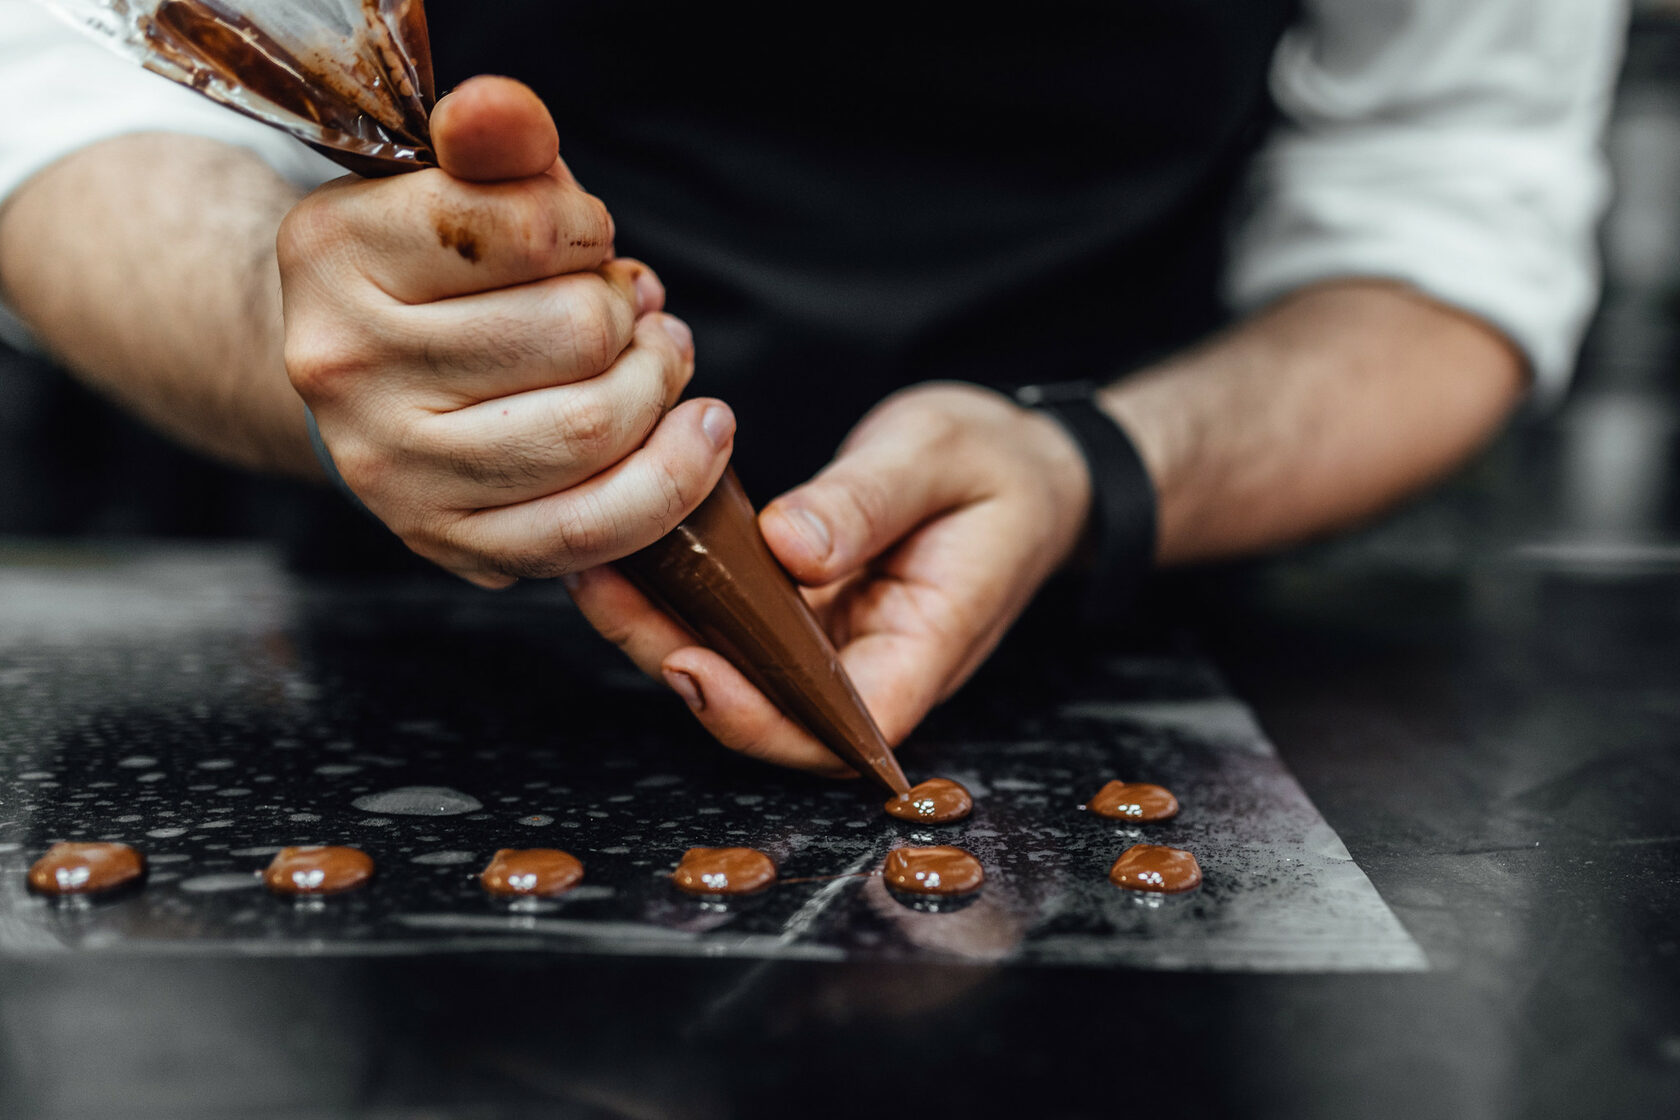 working with chocolate